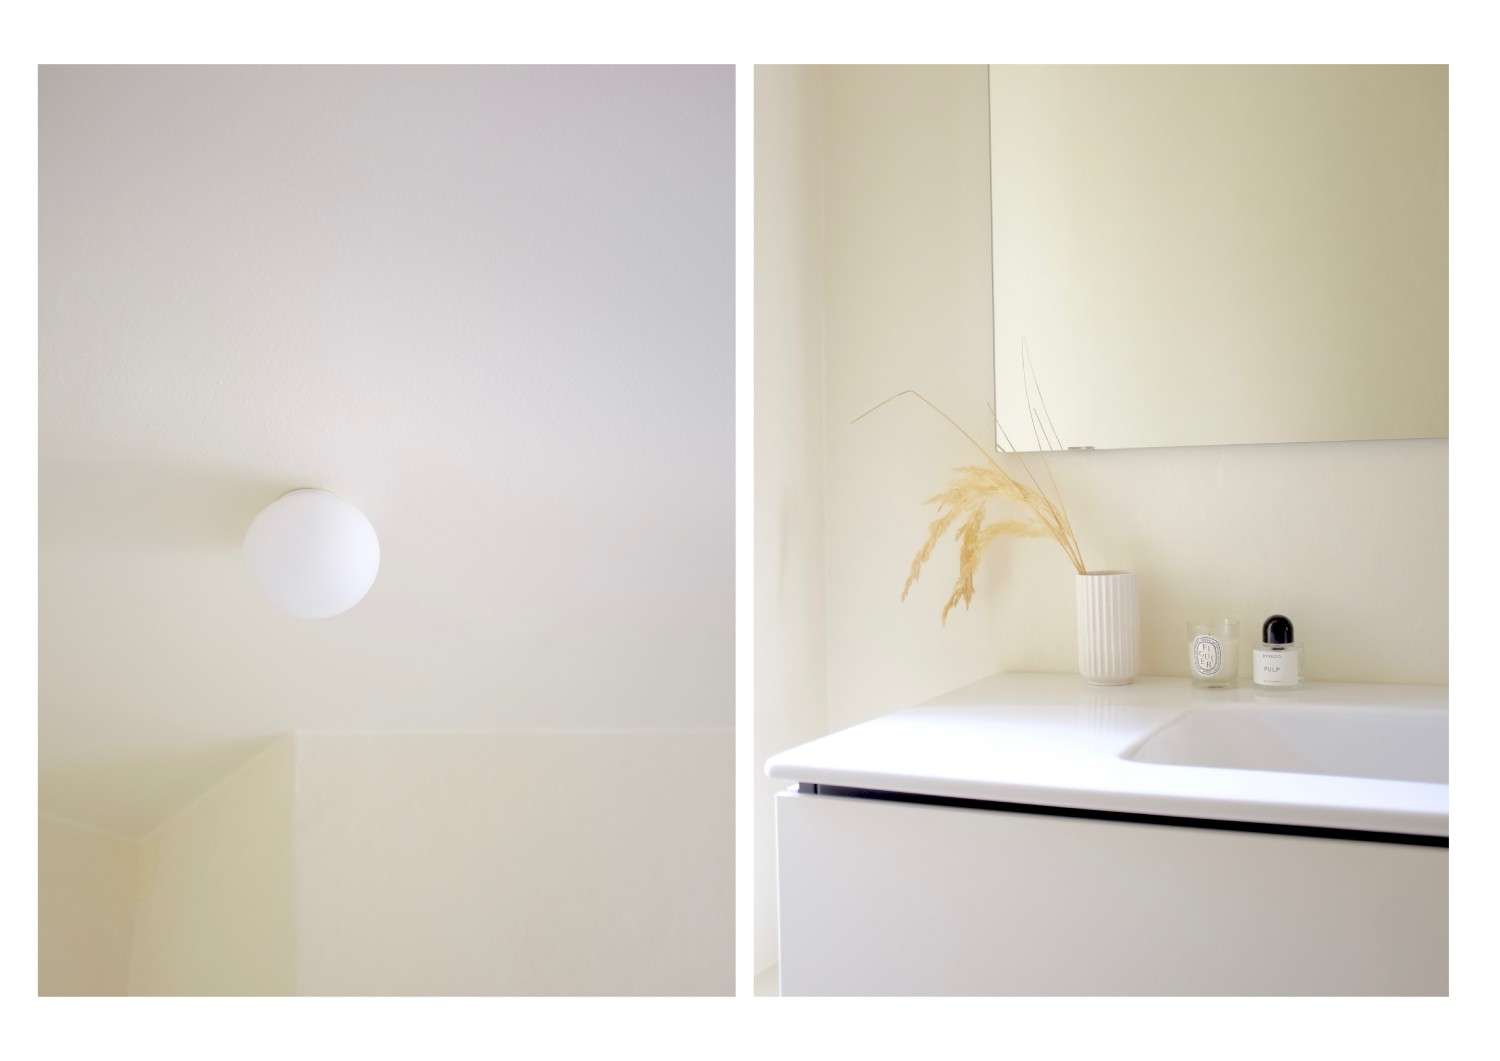 My new bathroom - a minimal space perfect for a night in doing an at home spa night.